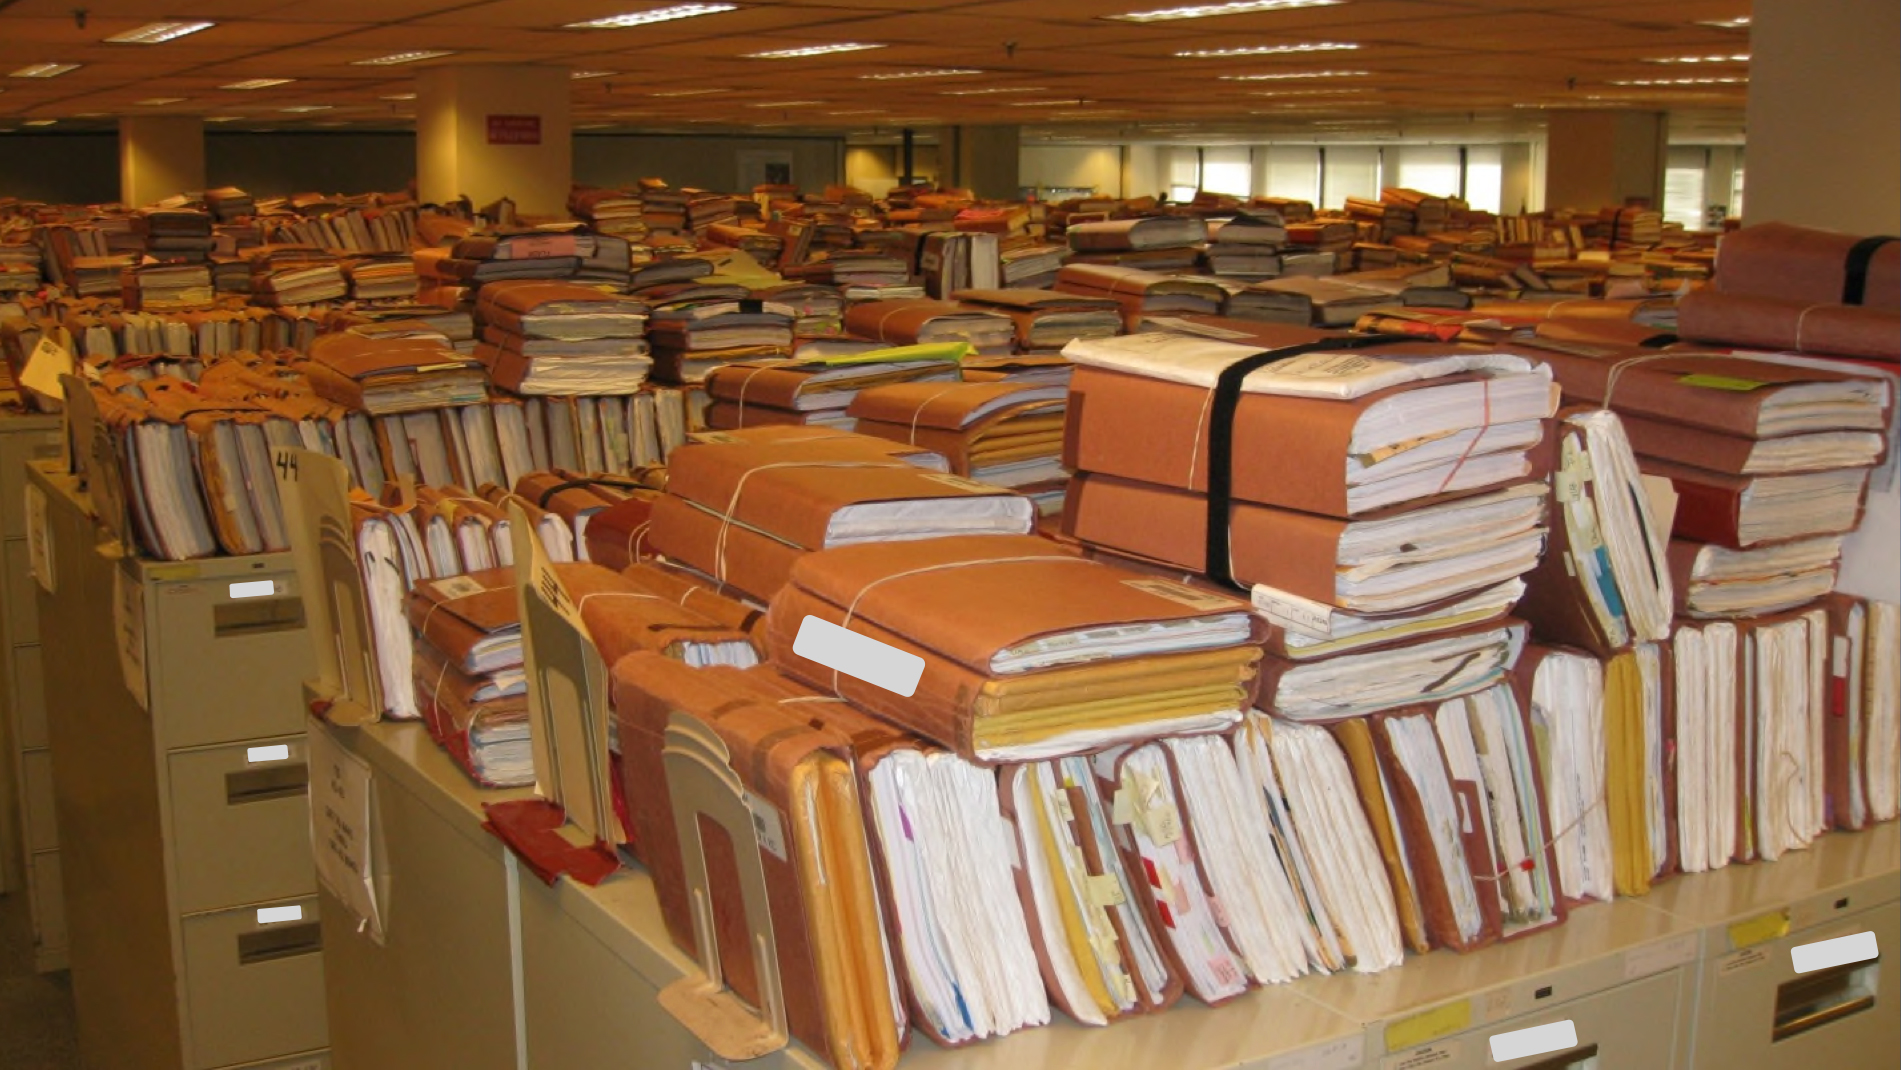 files and paperwork